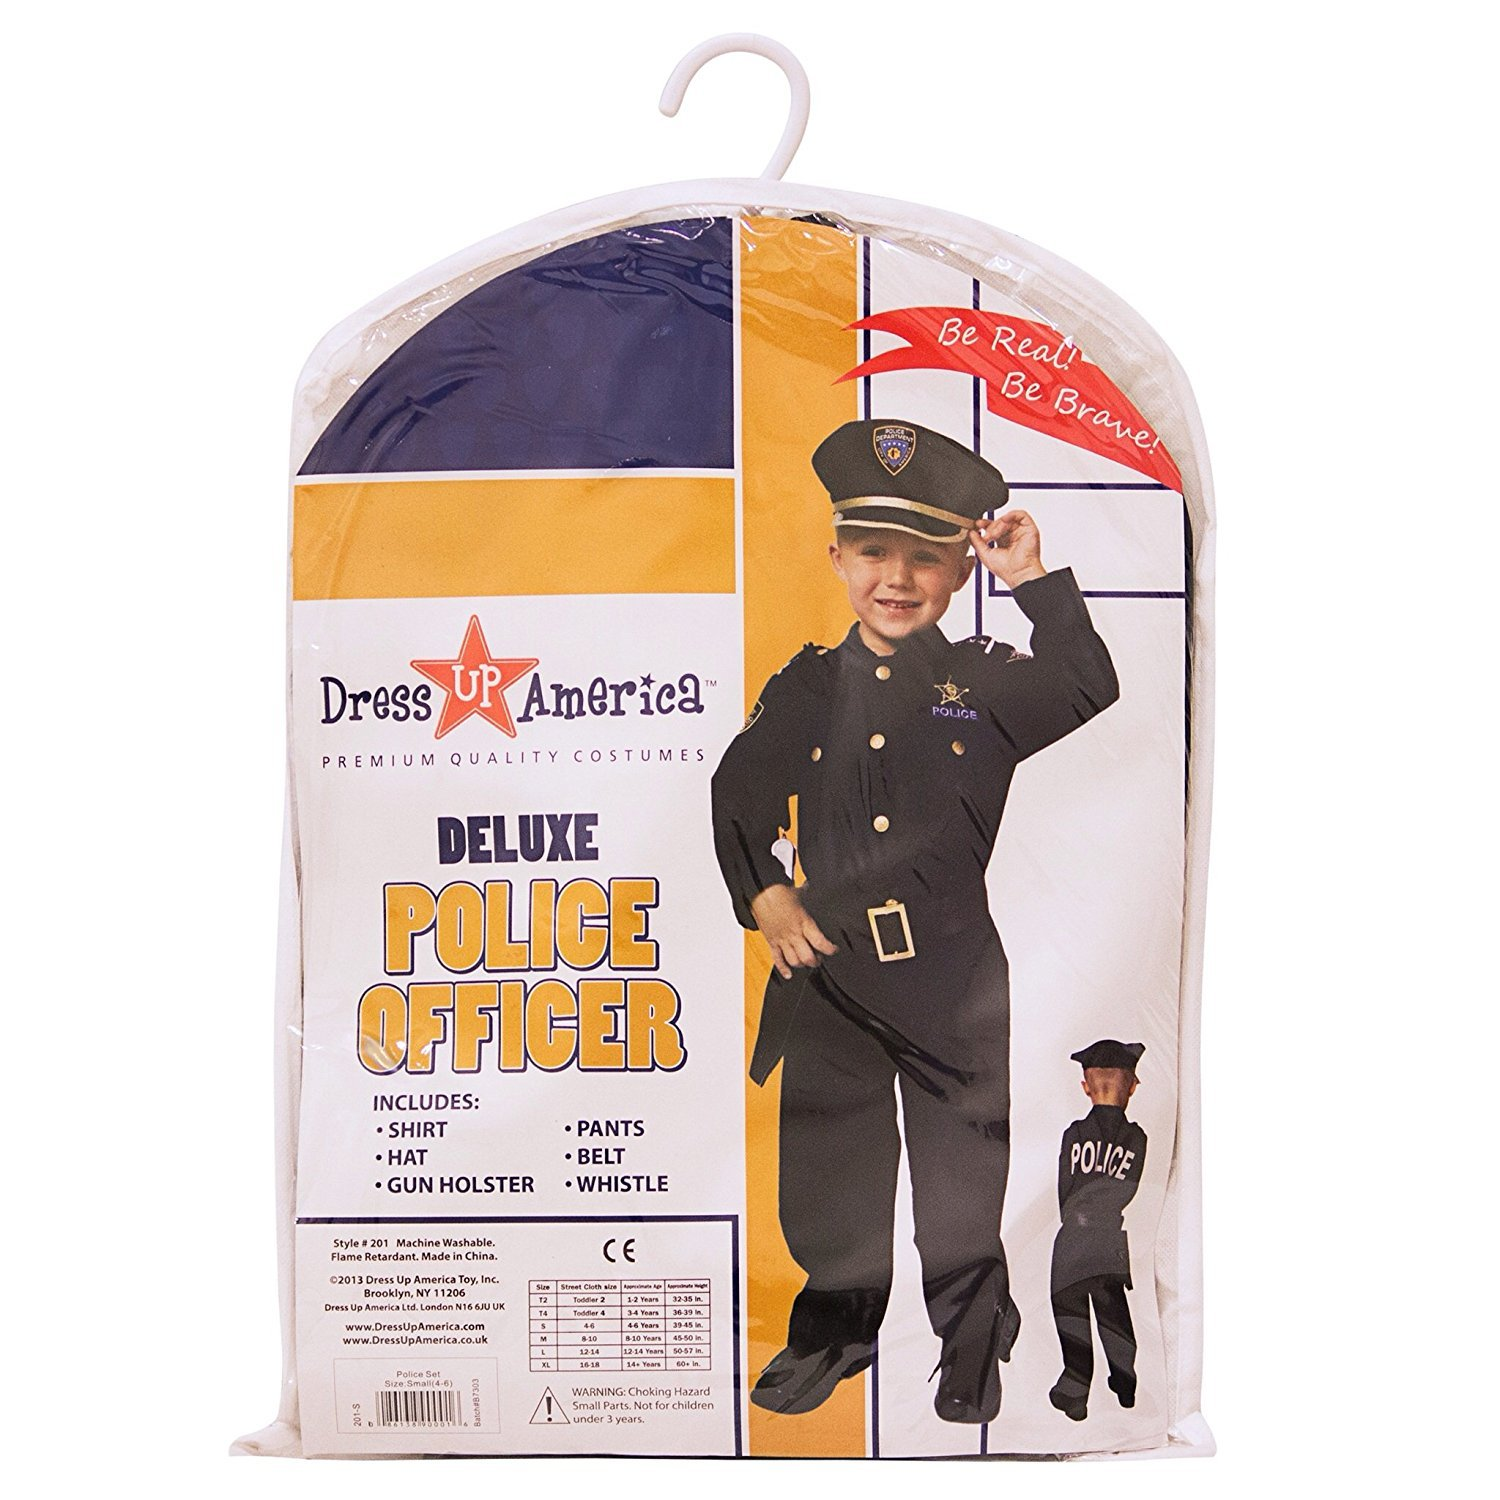 Amazon.com Dress Up America Deluxe Police Dress Up Costume Set - Includes Shirt Pants Hat Belt Whistle Gun Holster and Walkie Talkie (T2)BlueT2 ...  sc 1 st  Amazon.com & Amazon.com: Dress Up America Deluxe Police Dress Up Costume Set ...